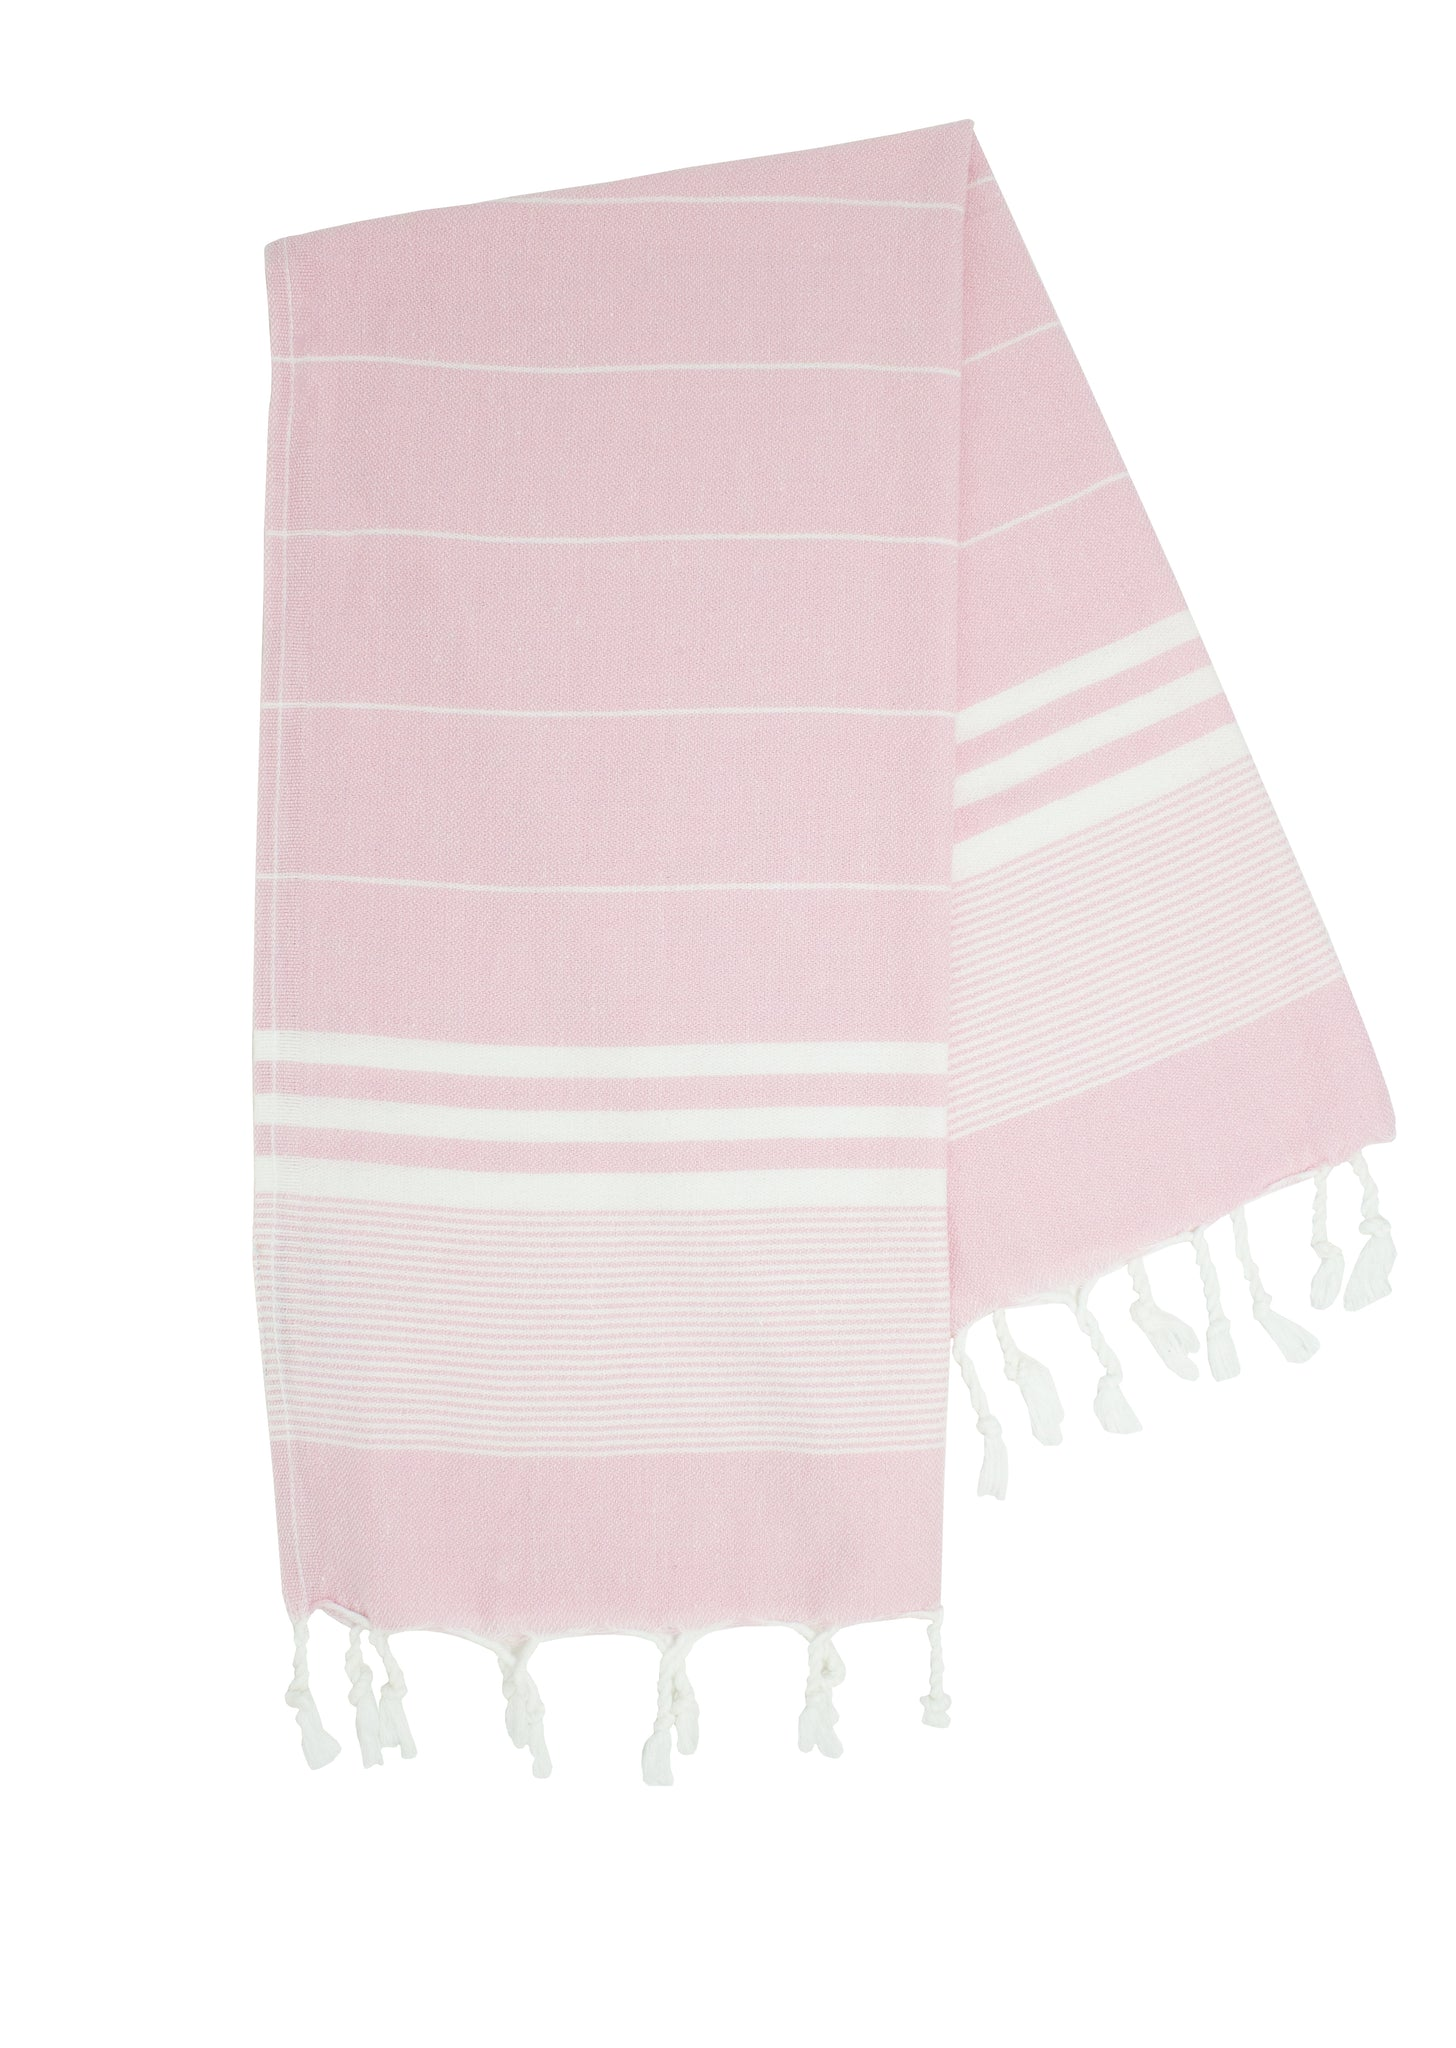 Light Pink Small Turkish Towel